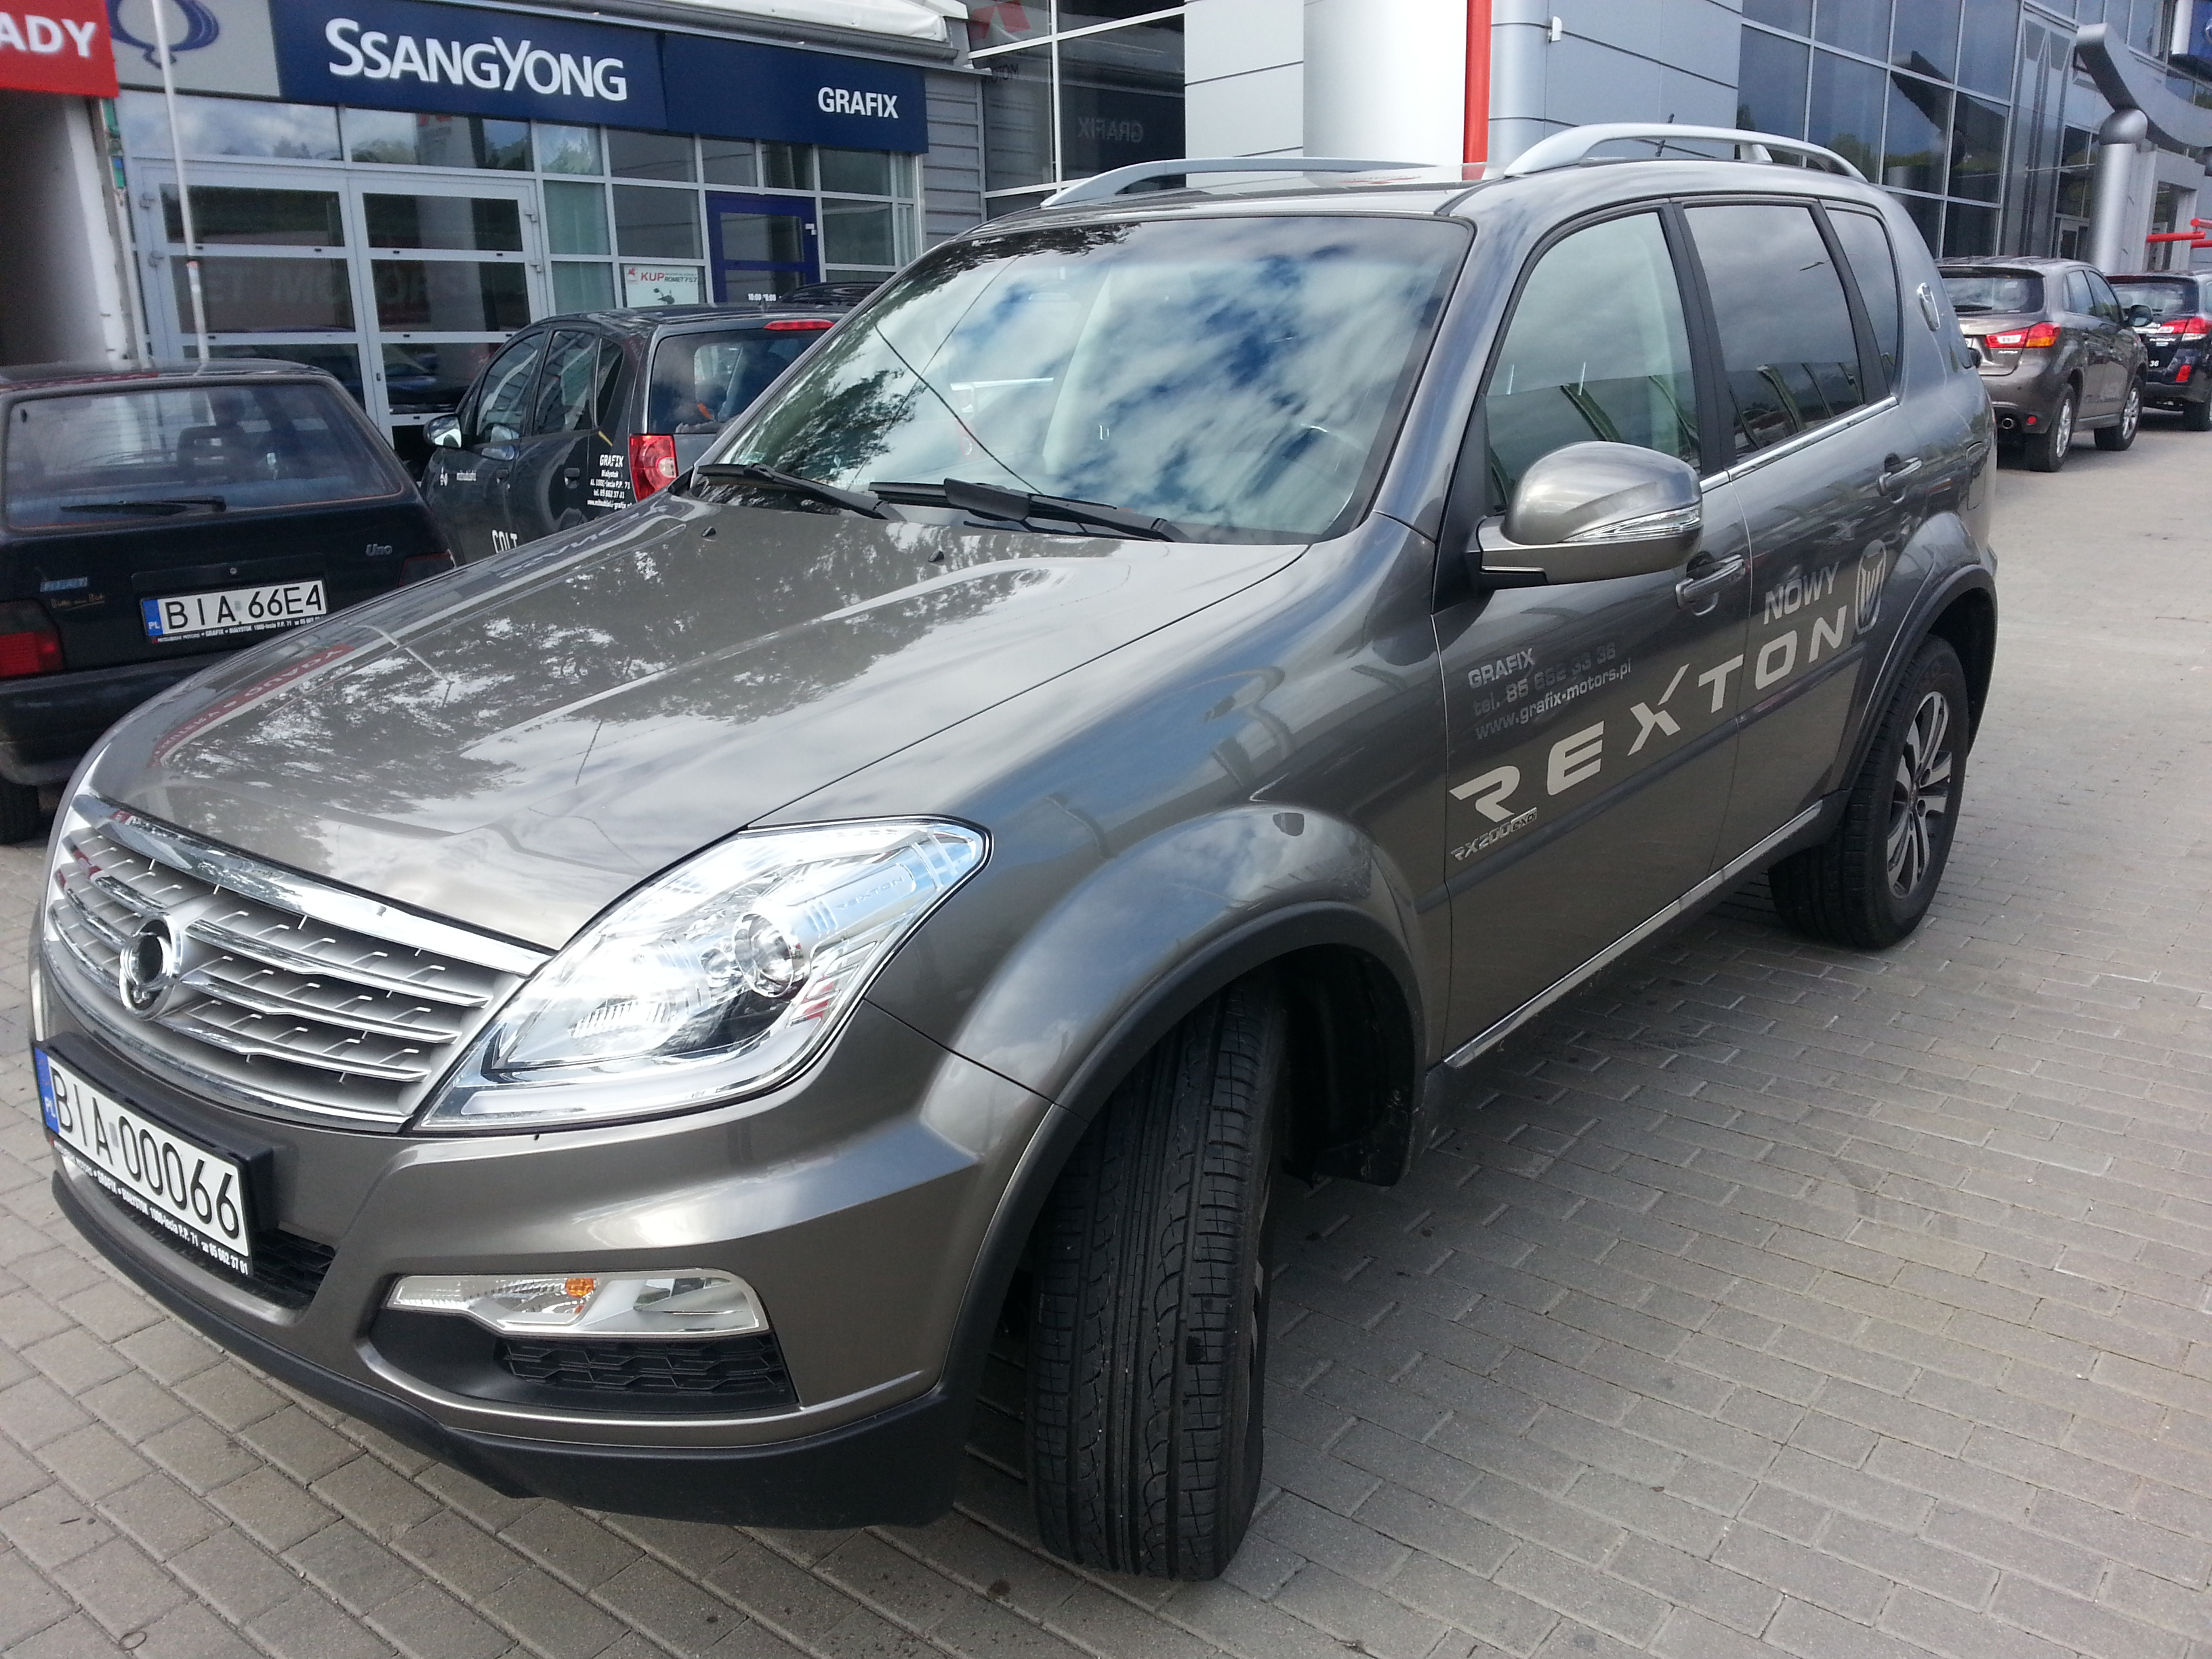 SsangYong Rexton 2.0 2013 photo - 11